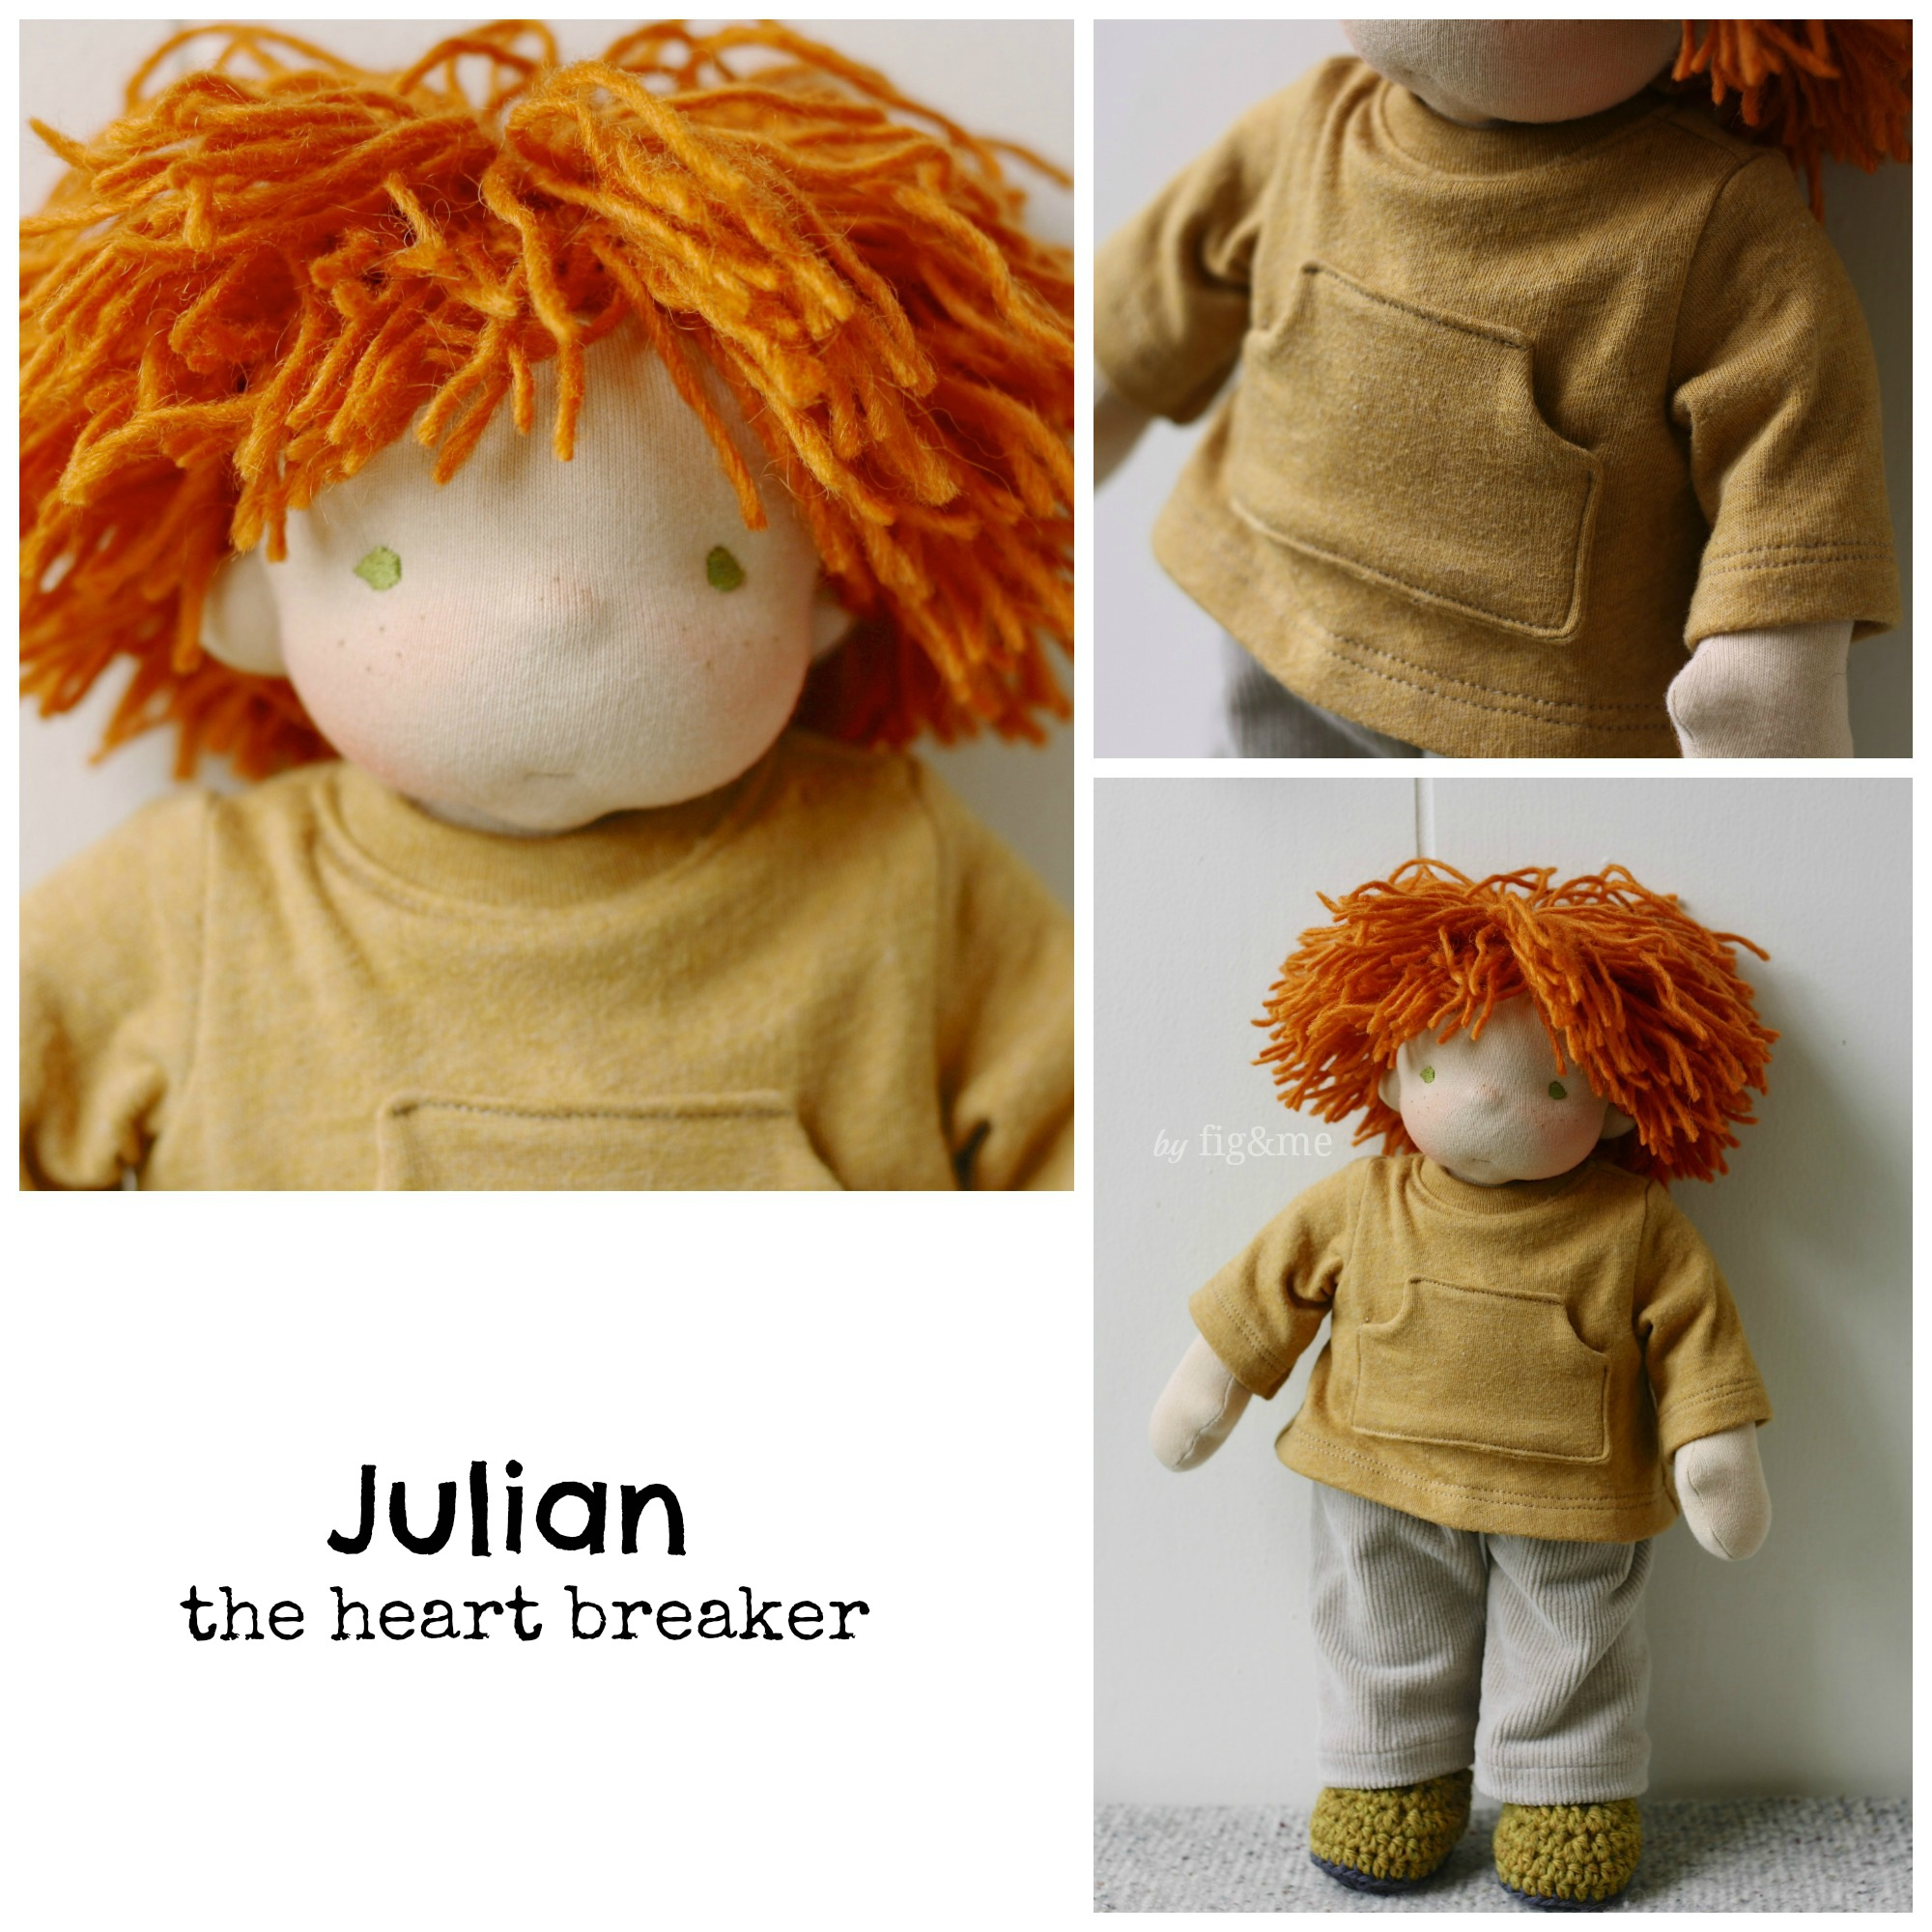 Little Julian, by Fig and me.